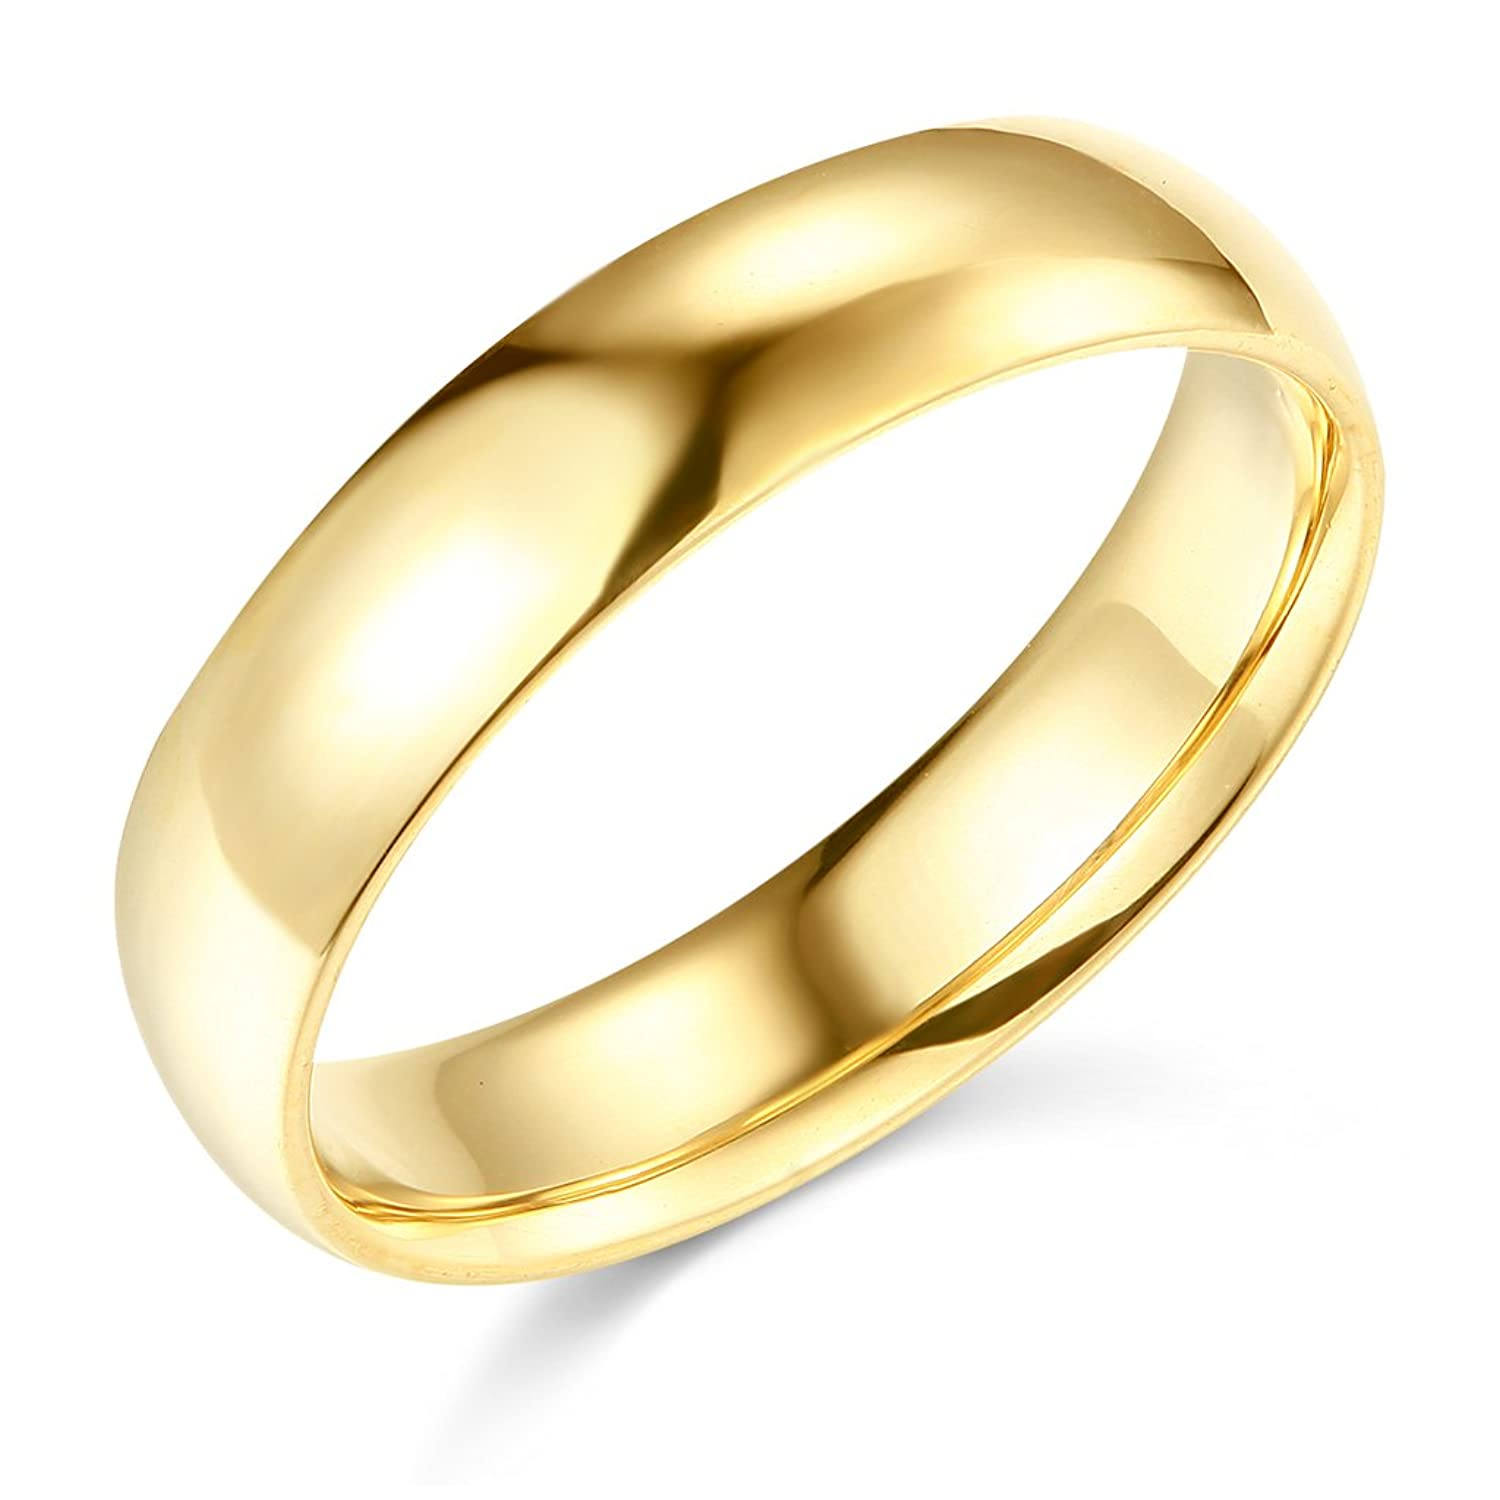 14k White or Yellow Gold 5mm COMFORT FIT Plain Wedding Band